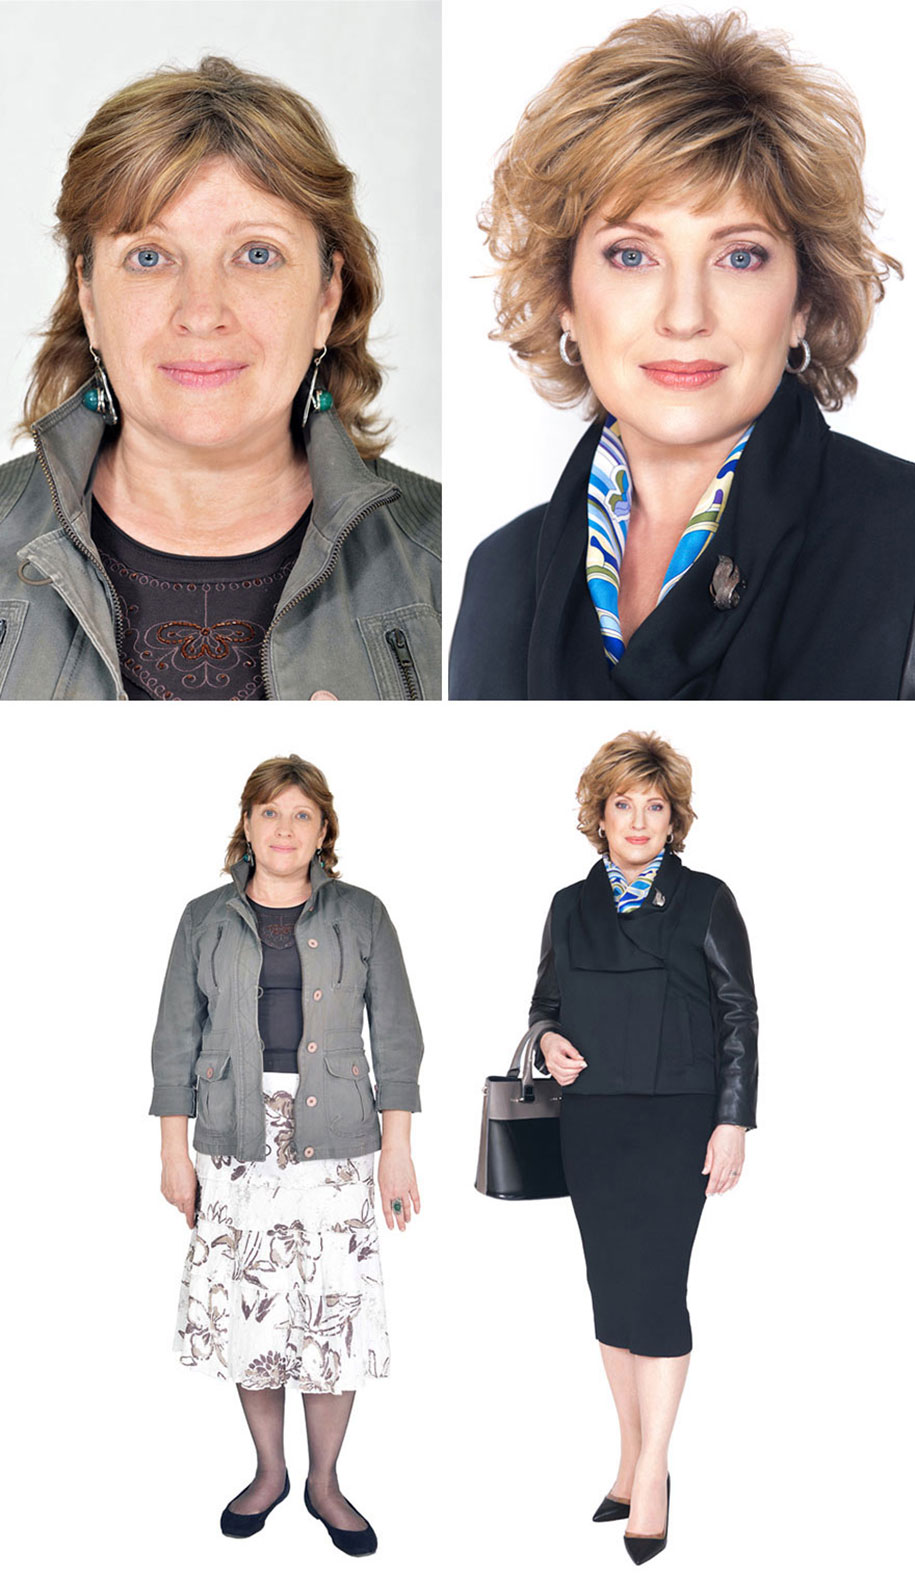 before-after-makeup-beauty-in-every-woman-konstantin-bogomolov-28